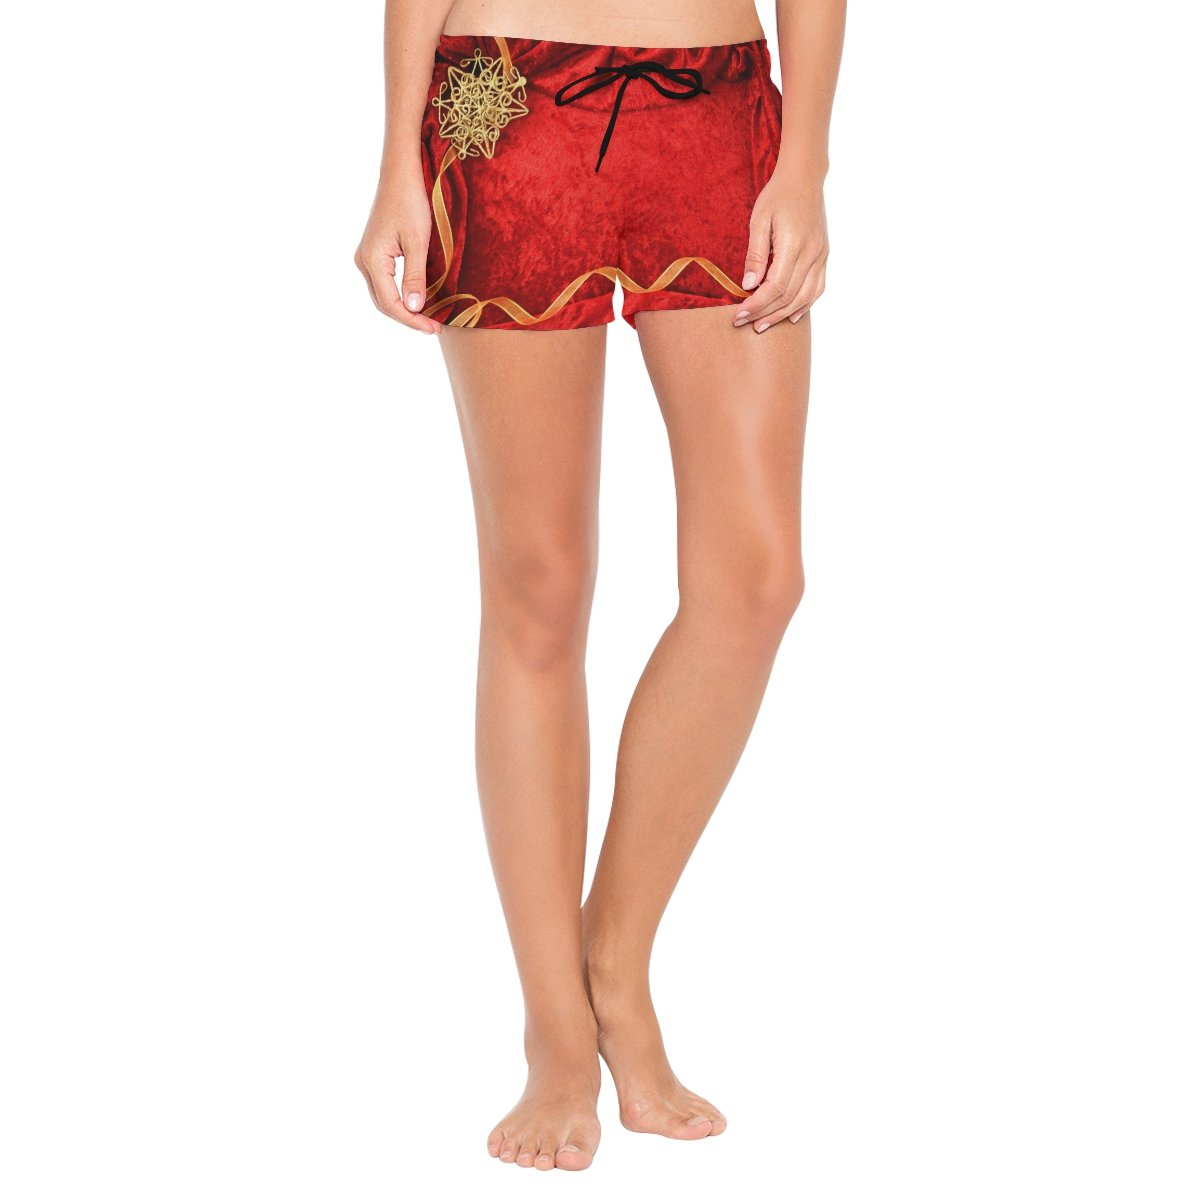 XiangHeFu Women's Beach Shorts Wedding Invitation Card Red Background Swim Trunk with Pockets